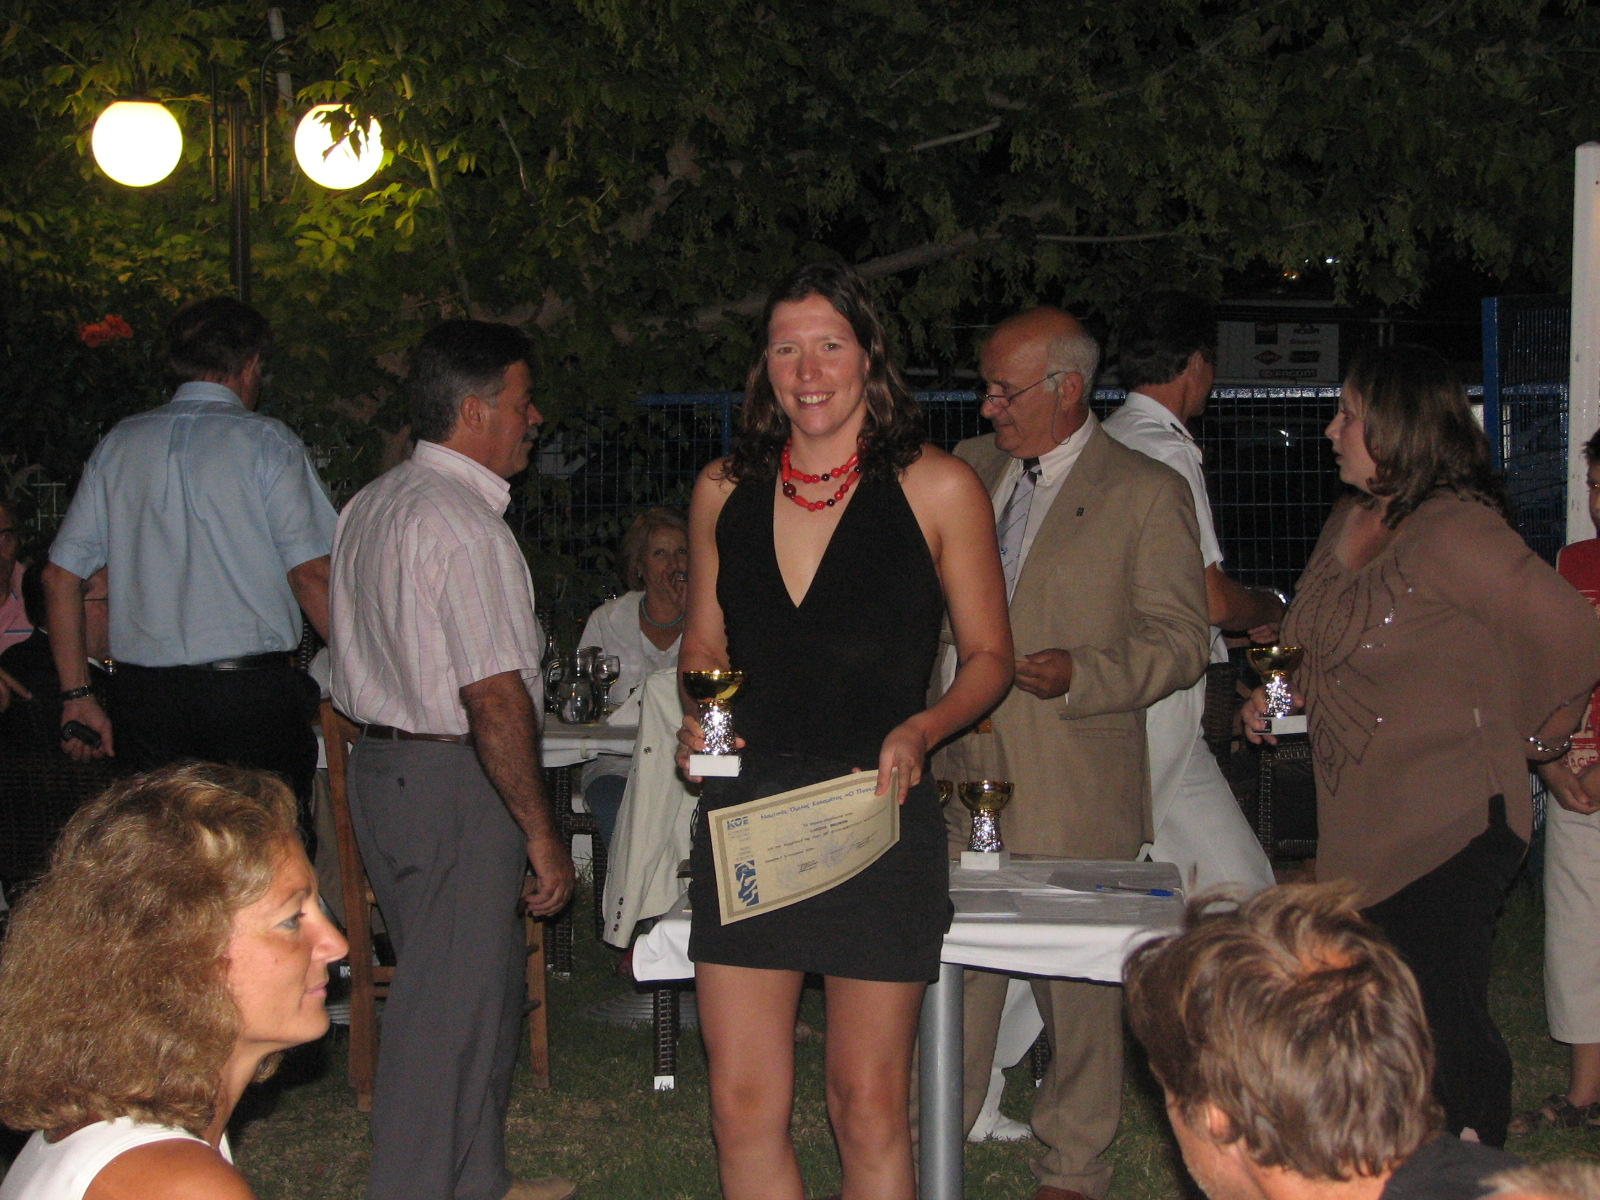 Carina takes second female and 4th place overall in Kalamata 2006